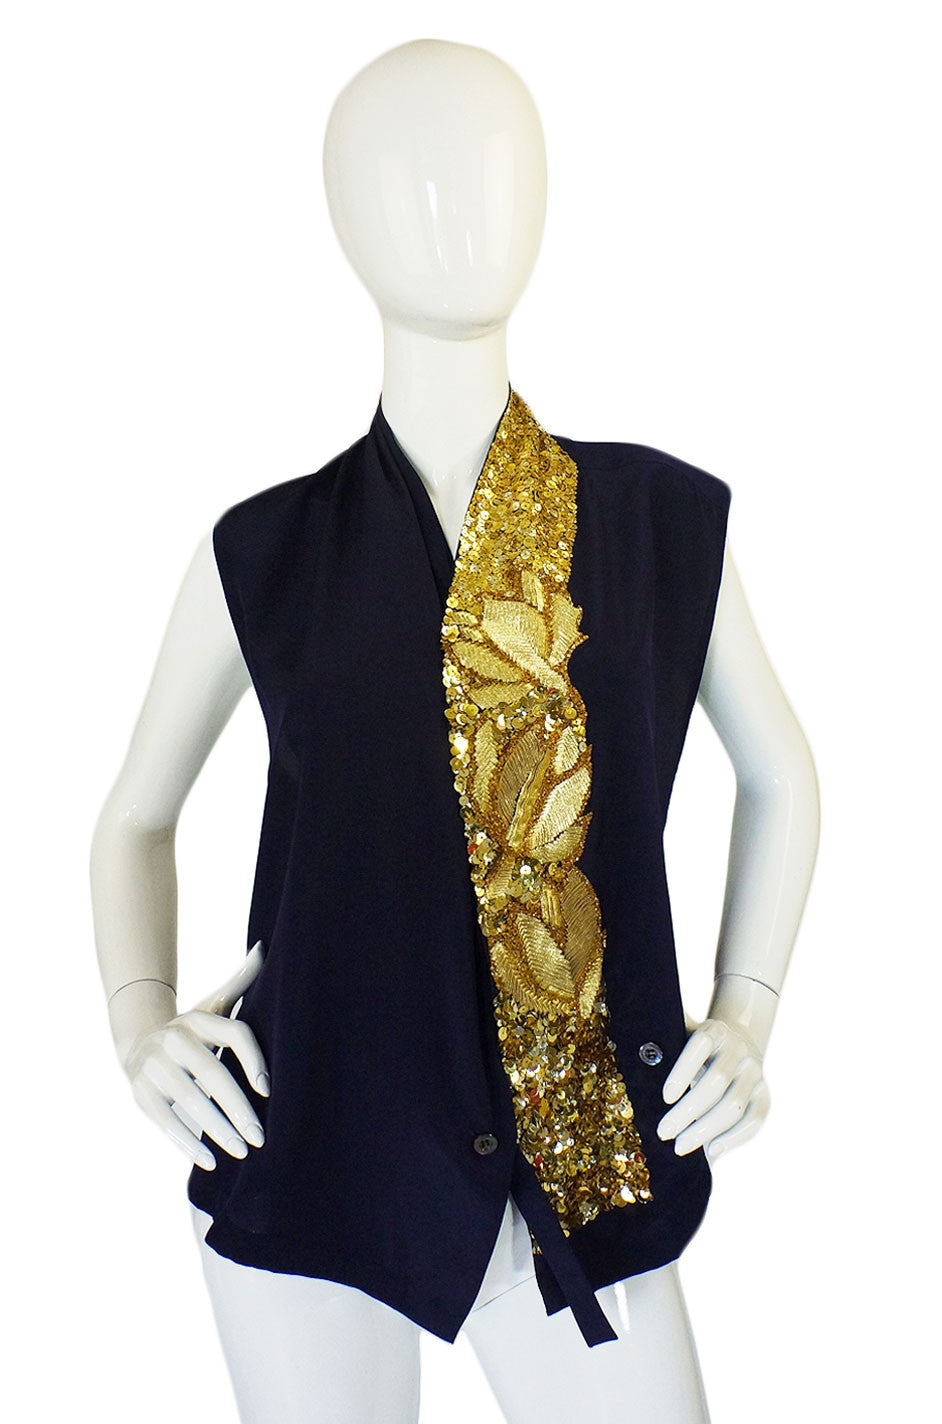 Buy Online Cheap Dries Van Noten Sequined Silk Jacket Where Can I Order Clearance Amazon ppNVfXKH